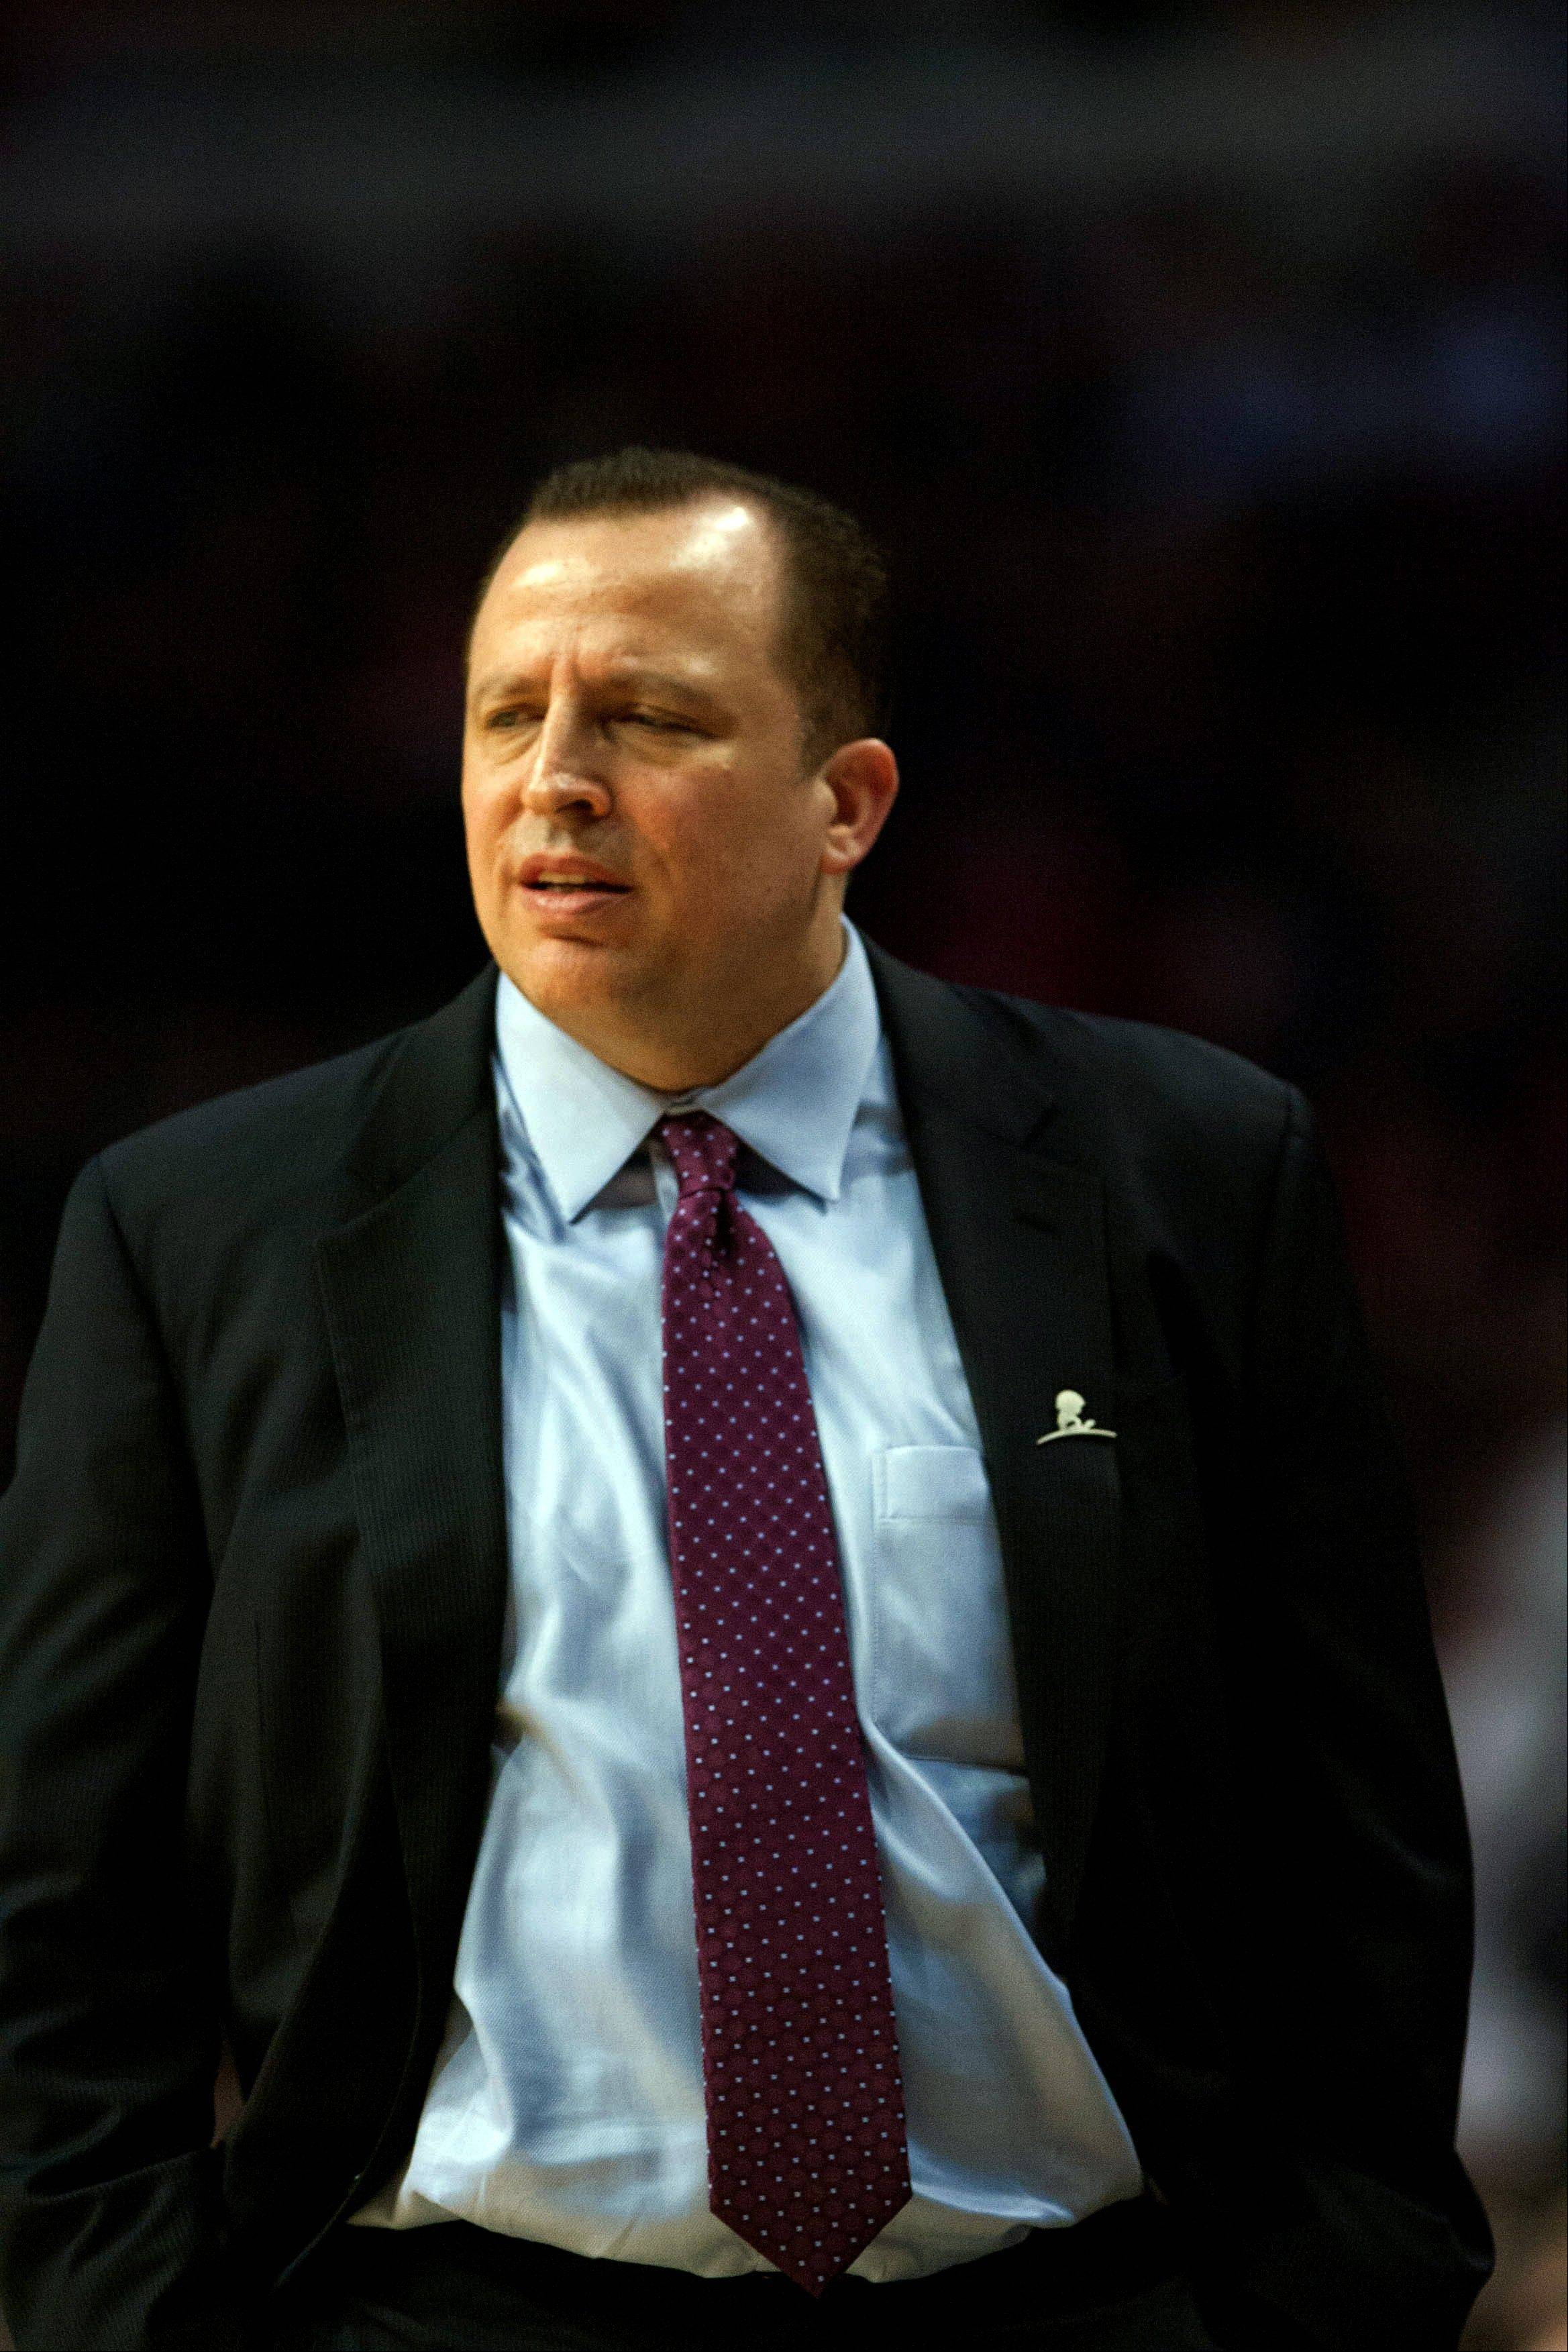 Bulls coach Tom Thibodeau watches the Nuggets run away with a 108-91 victory Monday night at the United Center.